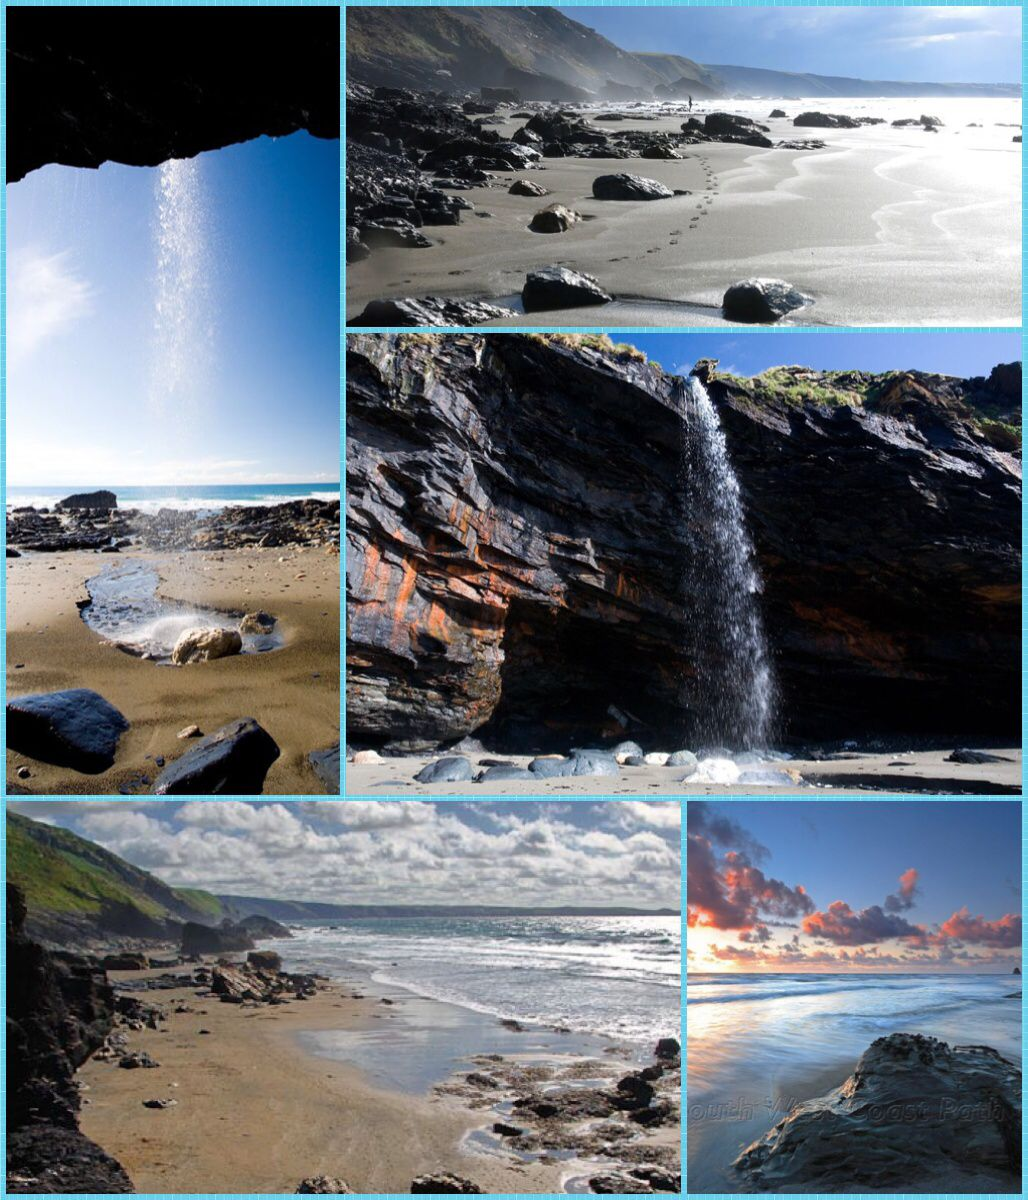 More images of Tregardock Cornwall